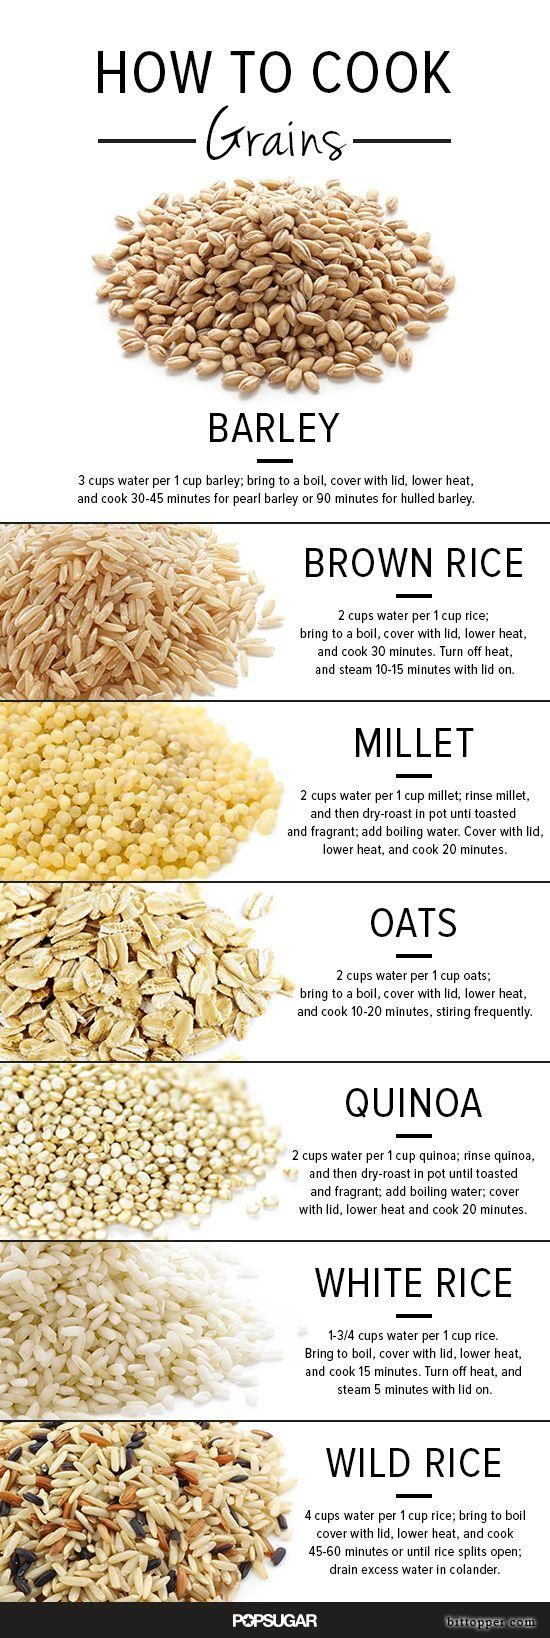 How to cook a variety of grains